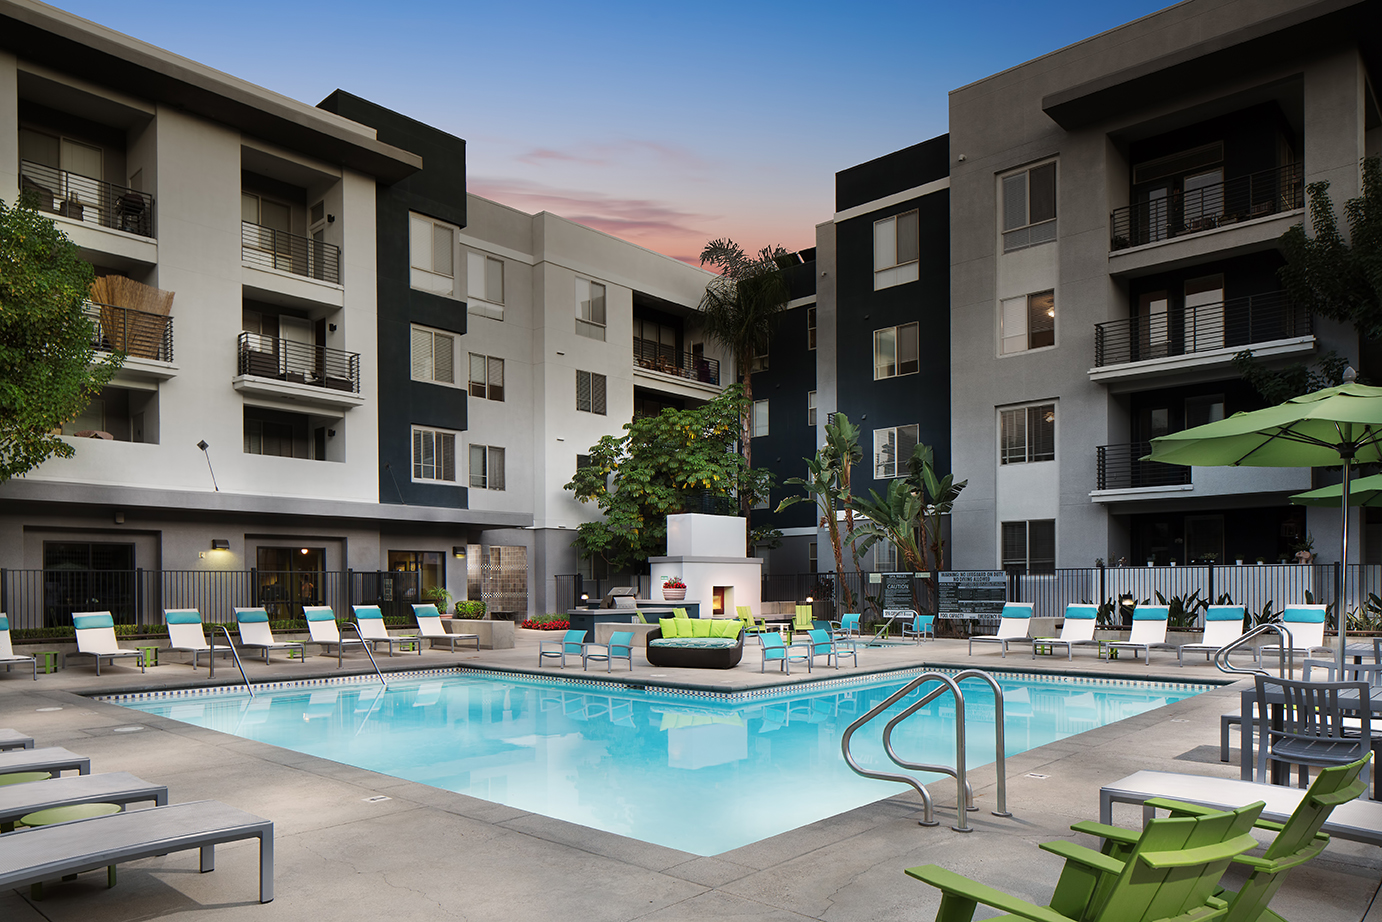 Mg properties acquires apartment complex for 93m san - Apartment complexes san diego ...